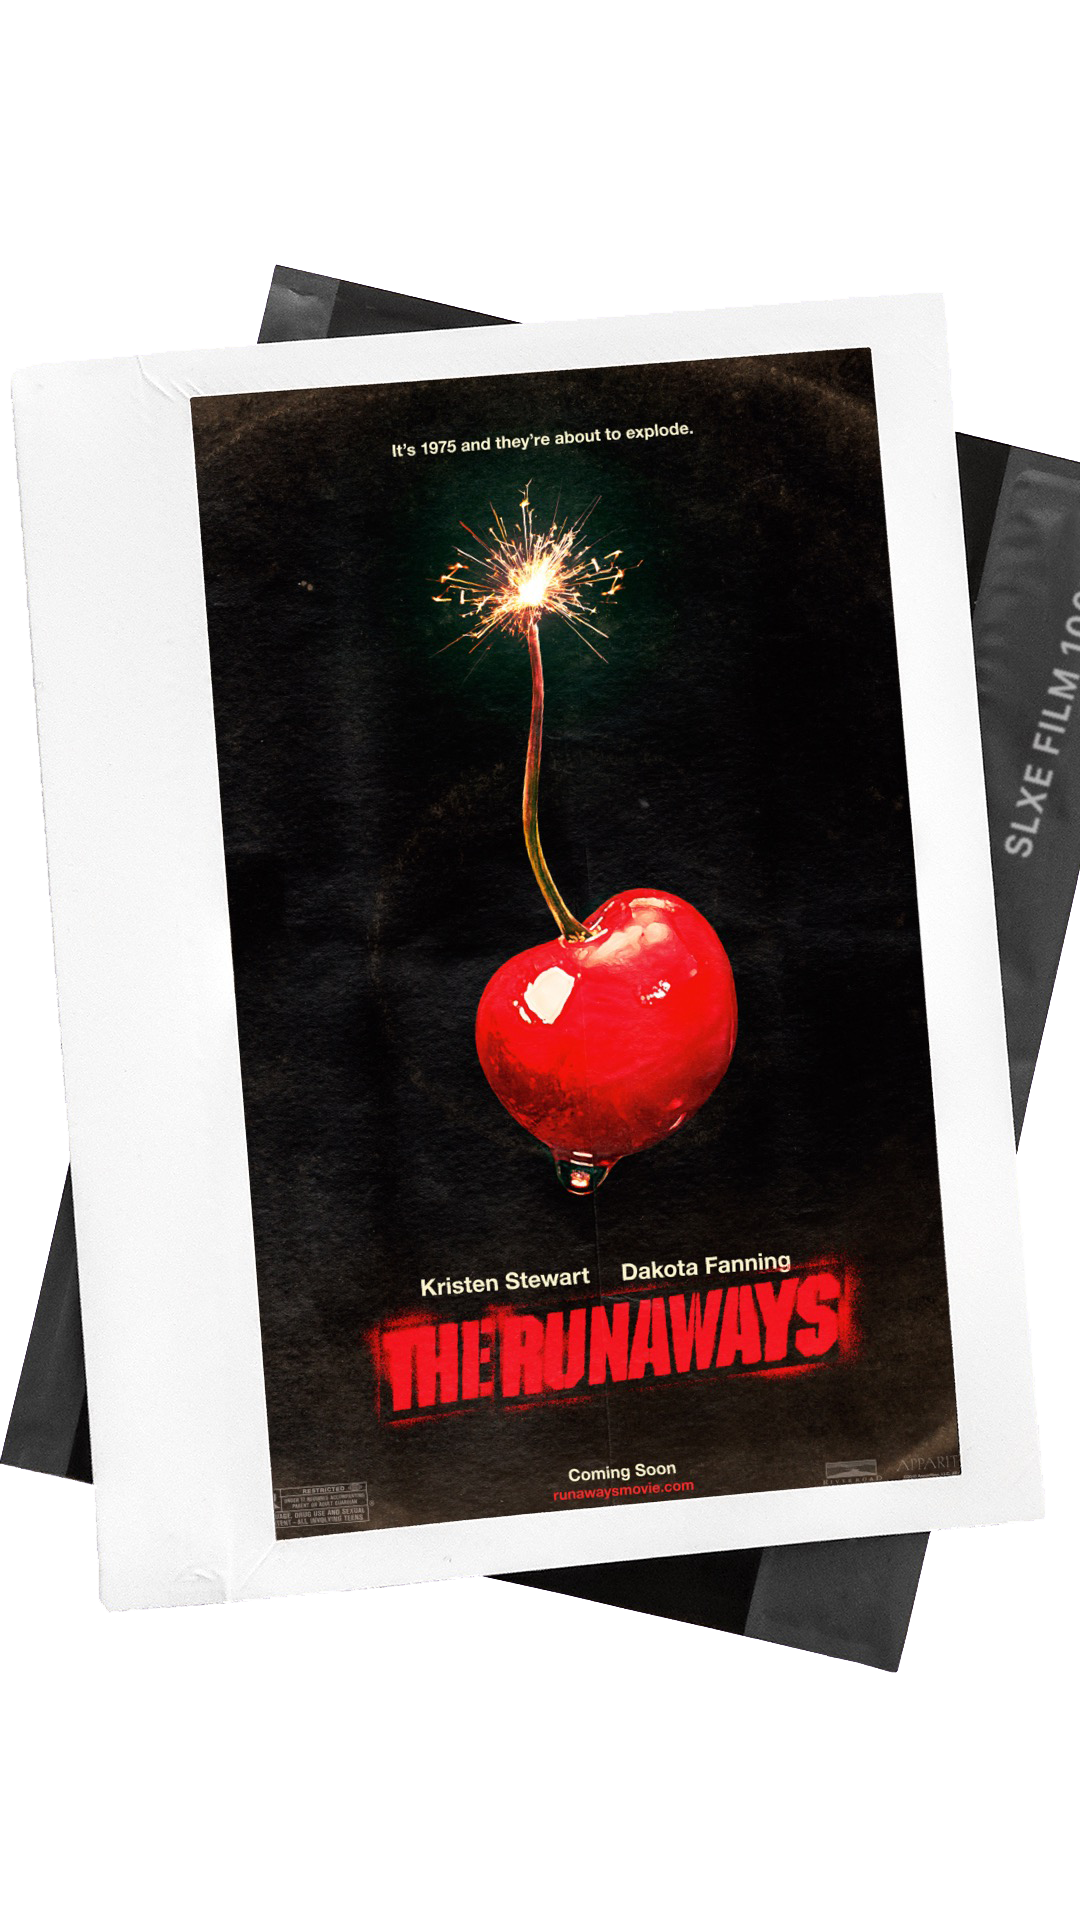 The Runaways (a good story) - The movie is based on the real story of the band, as told by the lead singer Cherie Currie. The Runaways follows the story of young Cherie who had a desperate ambition to become a rock star. In addition to the excellent story plot, the movie has been perfectly cast with Kristen Stewart as Joan Jett and Dakota Fanning as Cherie. I guarantee that the film will make you want to start a girl band and leave your shitty day job the same day.